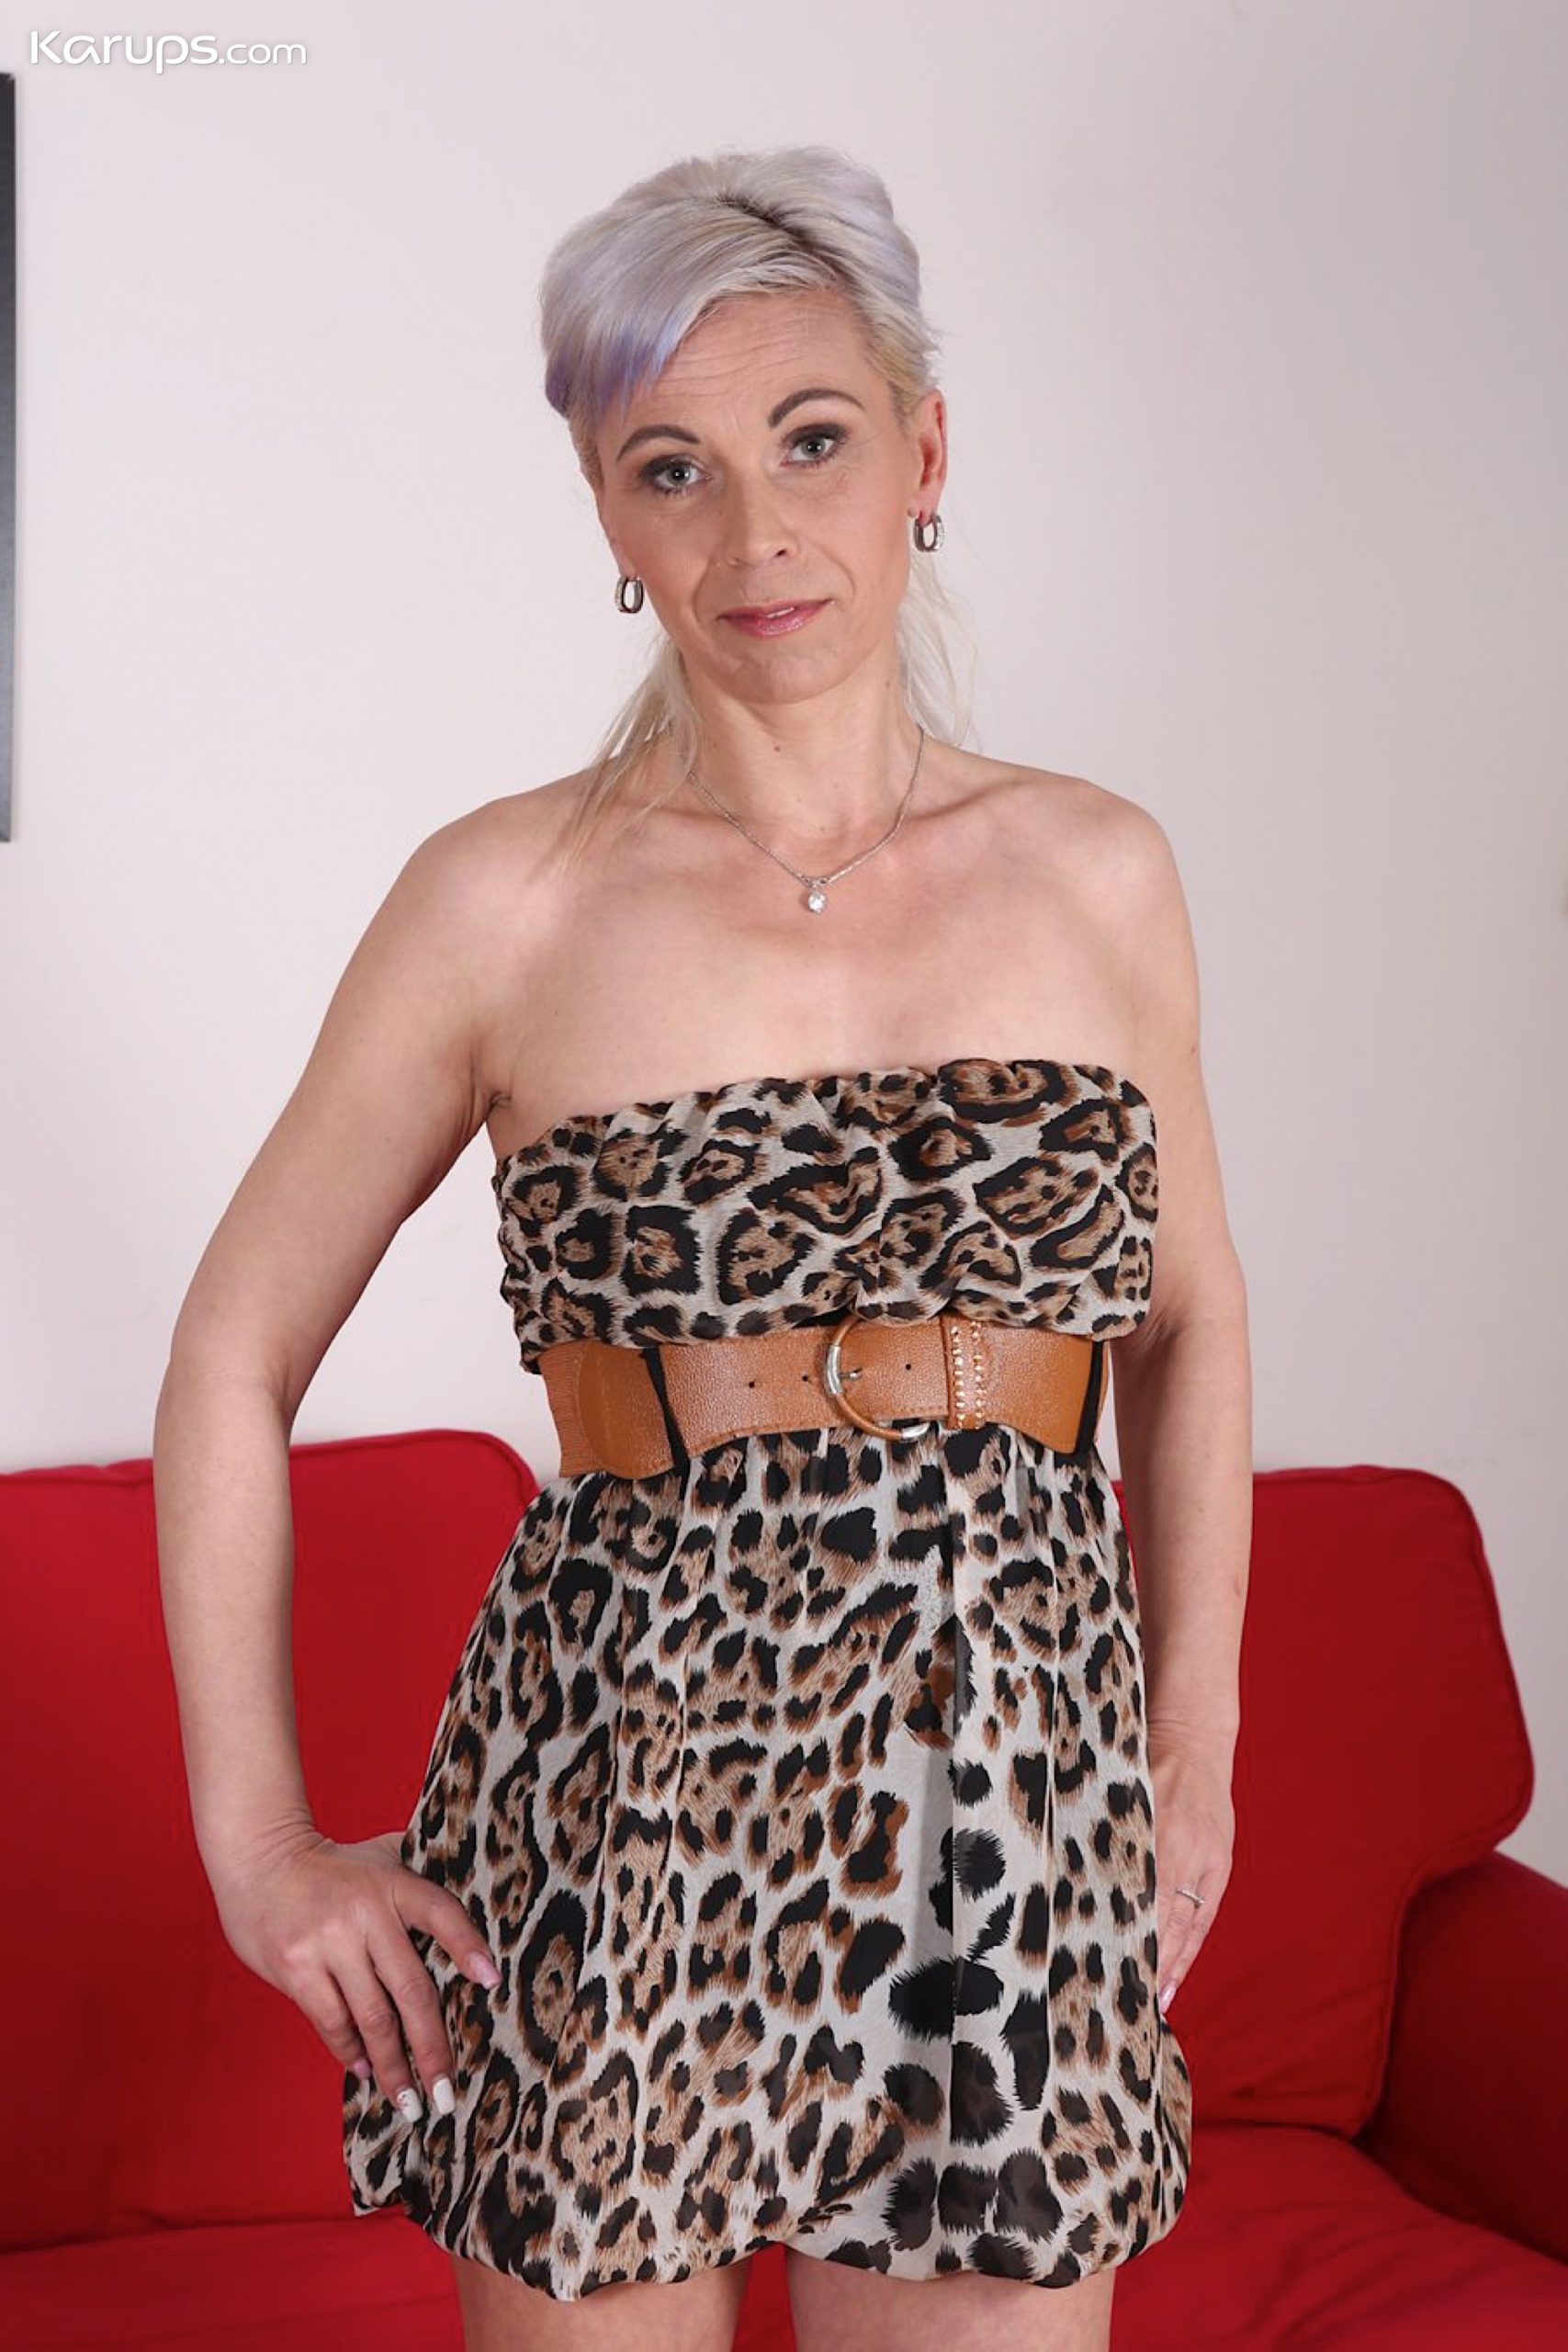 Grey haired mature babe Kathy White plays with her pussy. from Karupsow